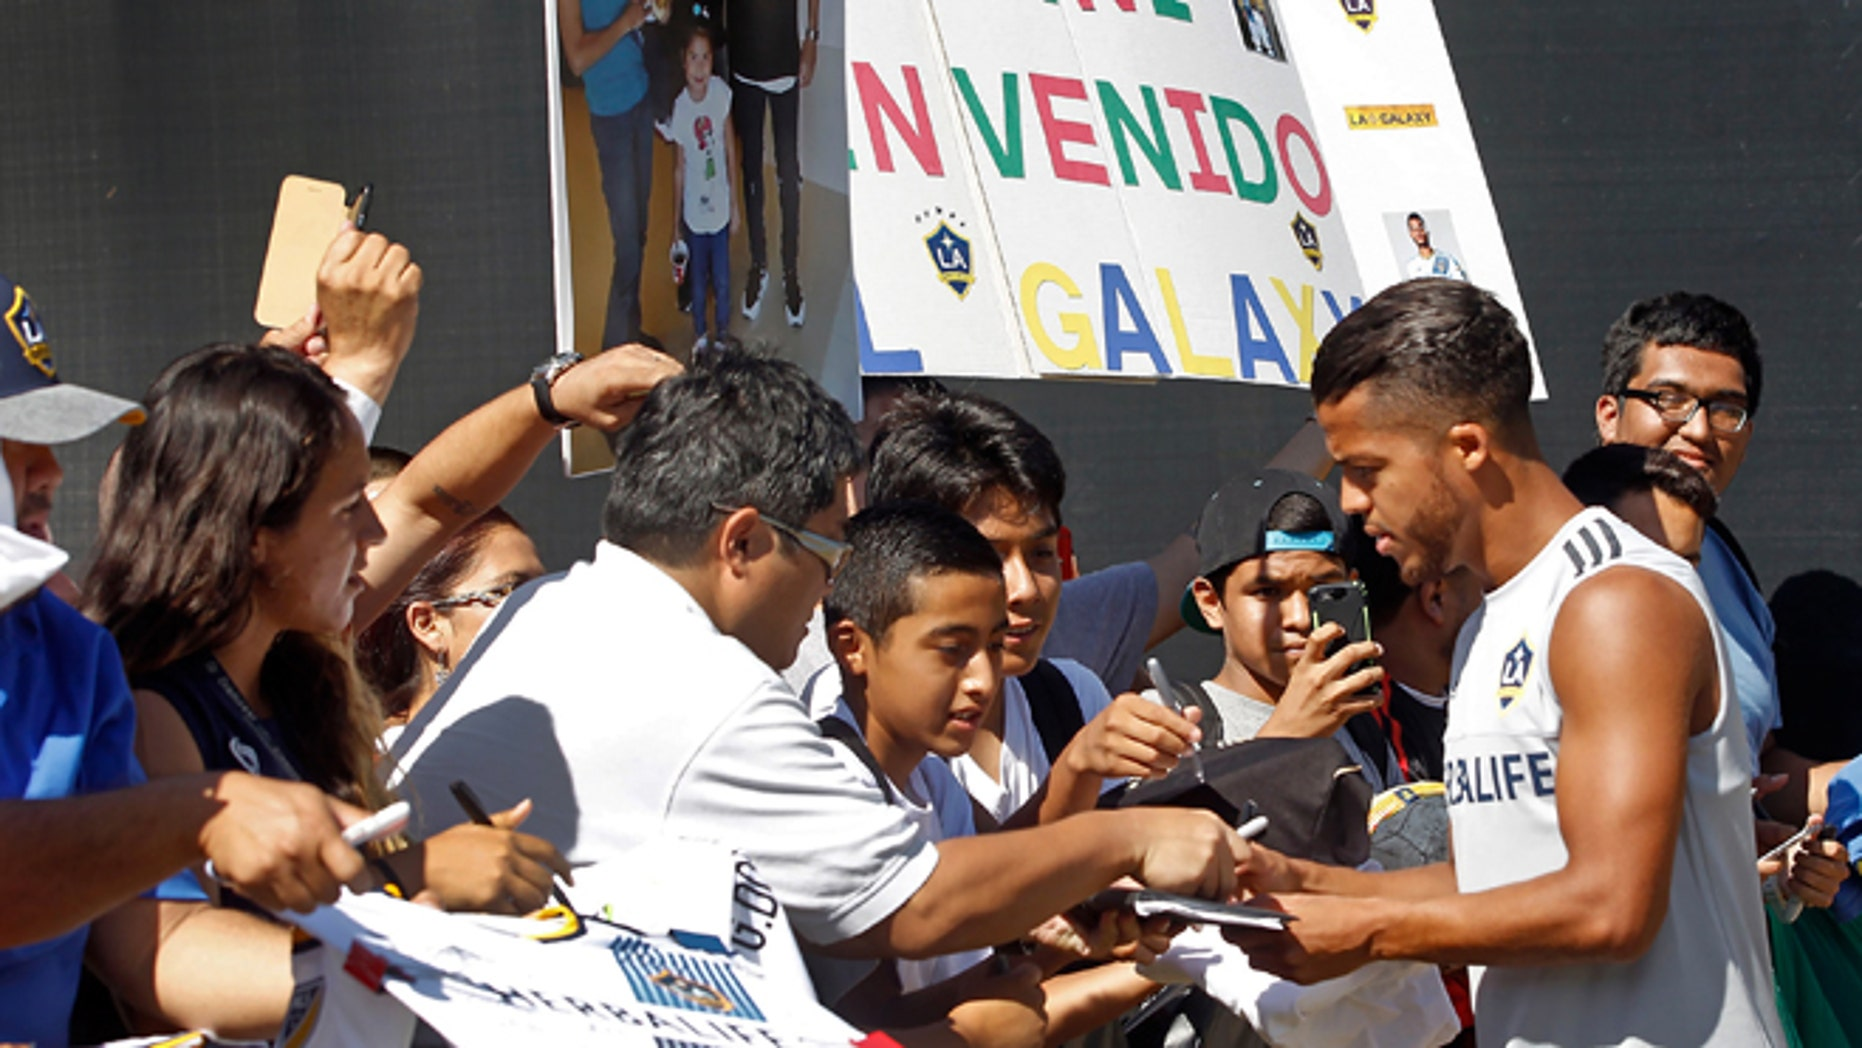 Los Angeles Galaxy forward Giovani dos Santos signs autographs before his first training with the MLS soccer team in Carson, Calif., on Tuesday, Aug. 4, 2015. After four years of courting dos Santos, the Galaxy signed the highest-profile Mexican star in their history to a designated player contract, paying a reported $7 million transfer fee. He will make his Major League Soccer debut on Sunday against the Seattle Sounders FC. (AP Photo/Nick Ut)